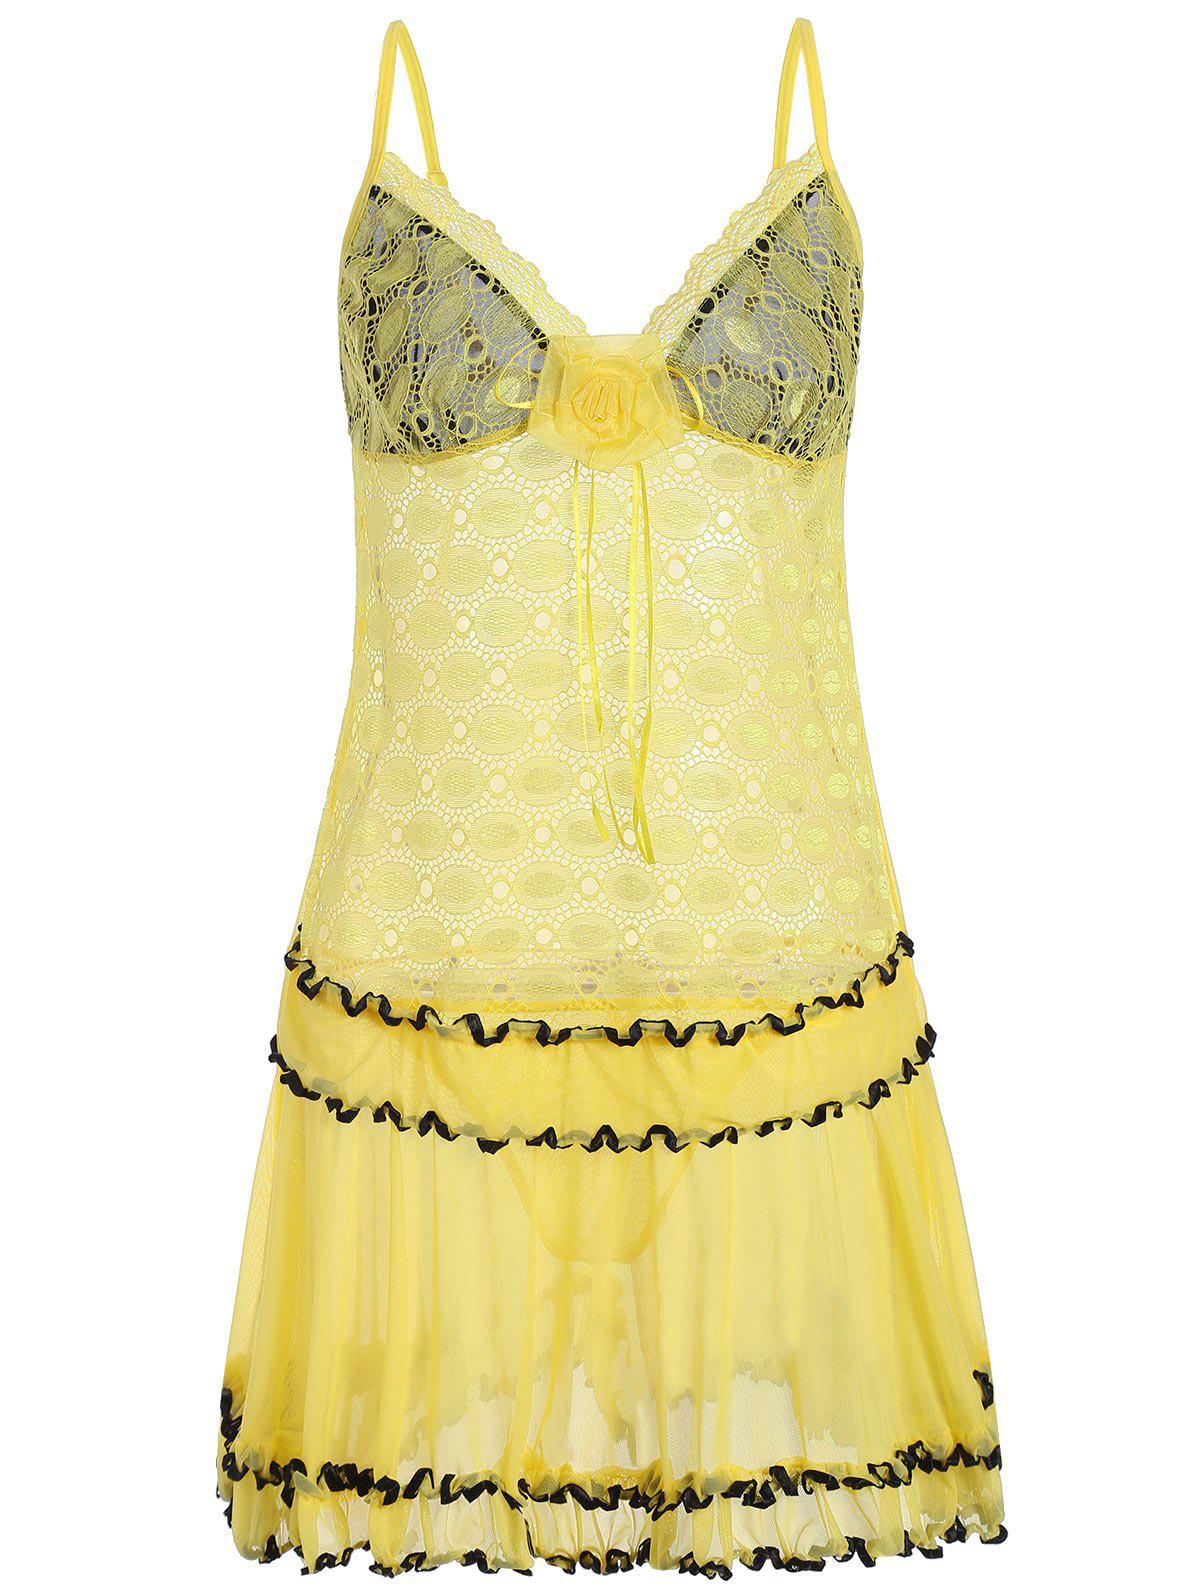 Lace Mesh Sheer Slip Babydoll with Ruffles - YELLOW ONE SIZE